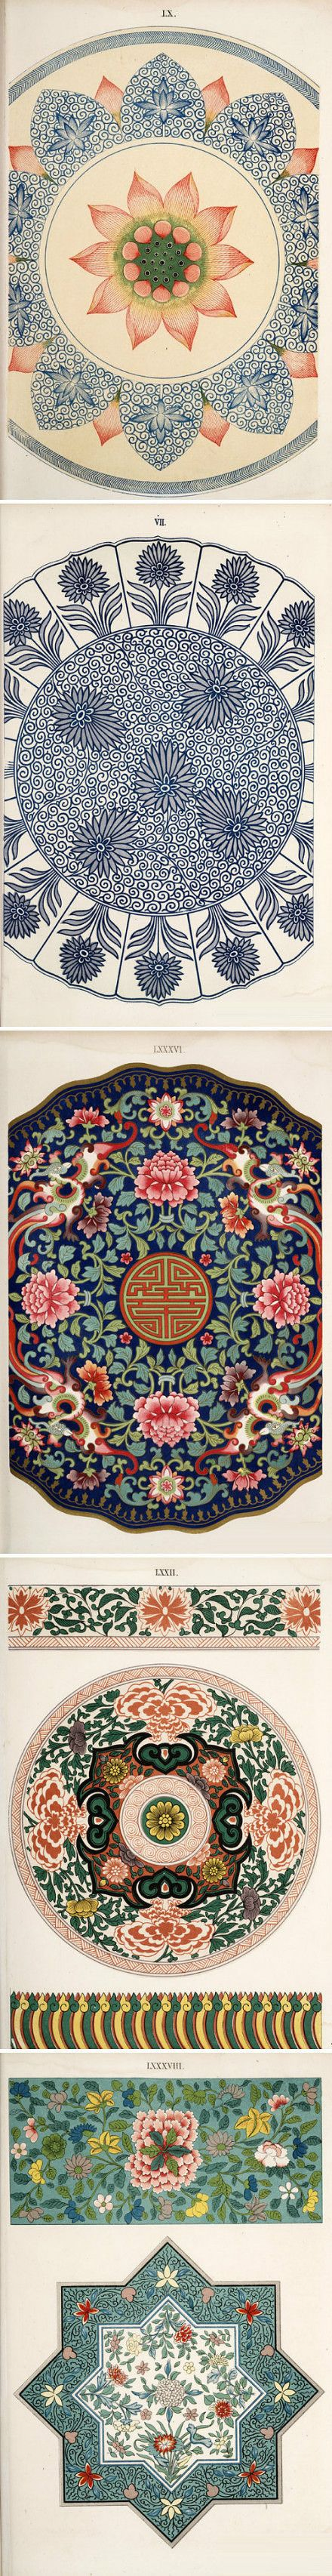 Chinese decorative art motifs  #DecorativeChineseArt #ChineseCeramics